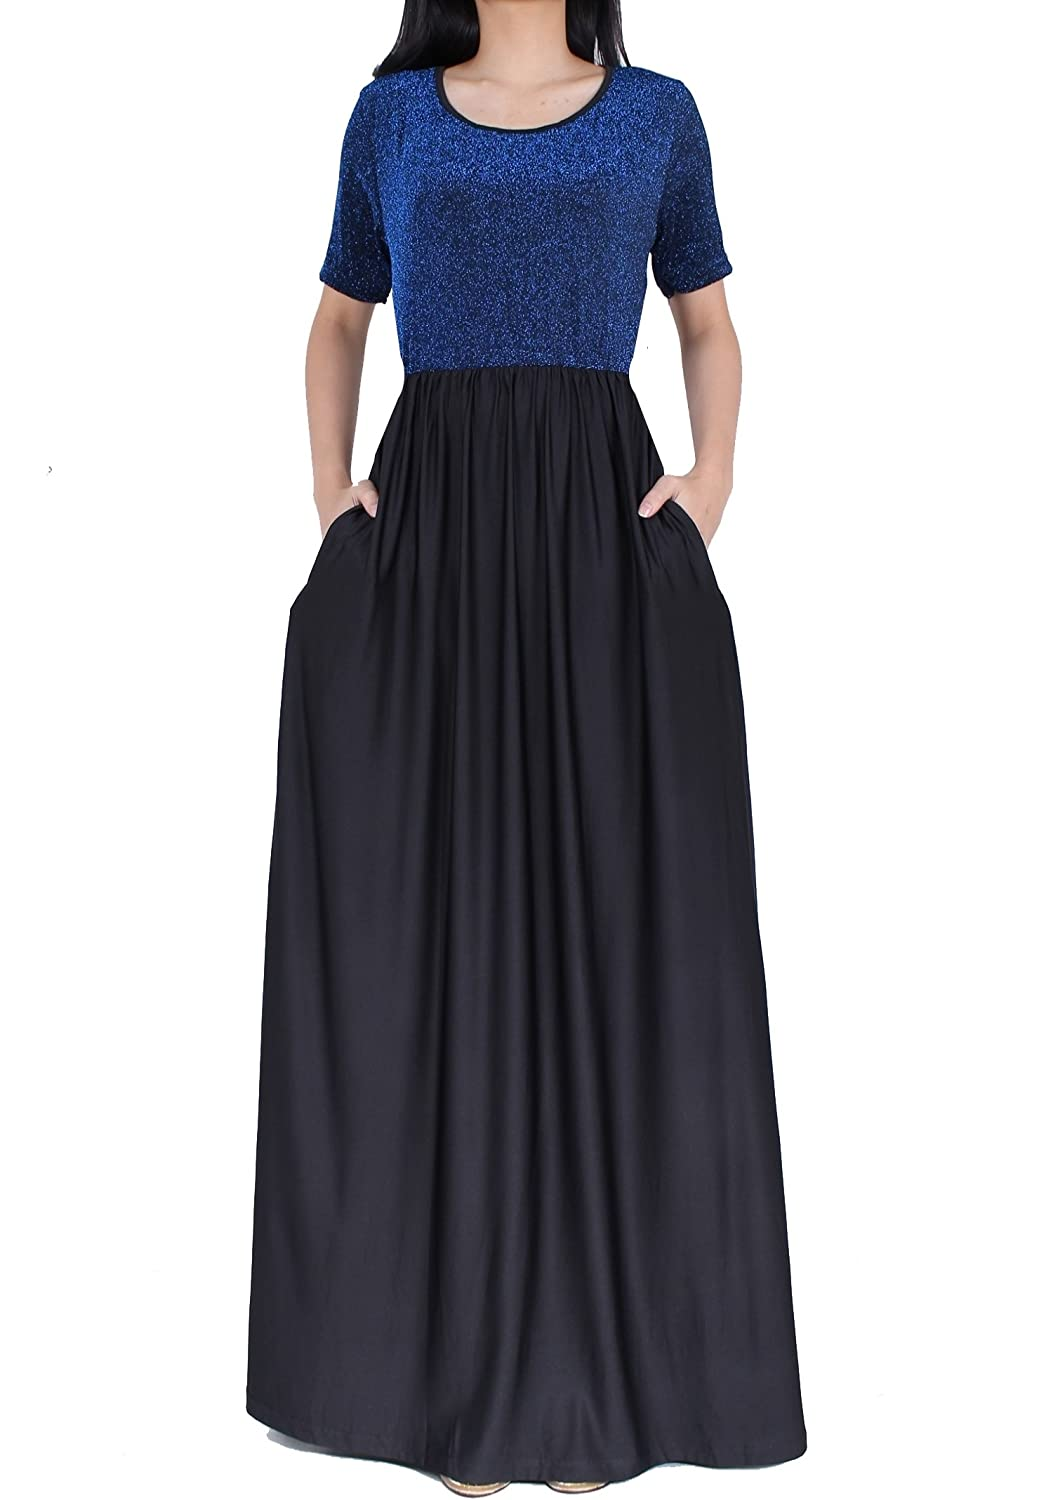 Women Plus Size Sleeve Flowy Bridesmaid Cocktail Evening Gown Formal Long  Maxi Dress at Amazon Women s Clothing store  e33f14098